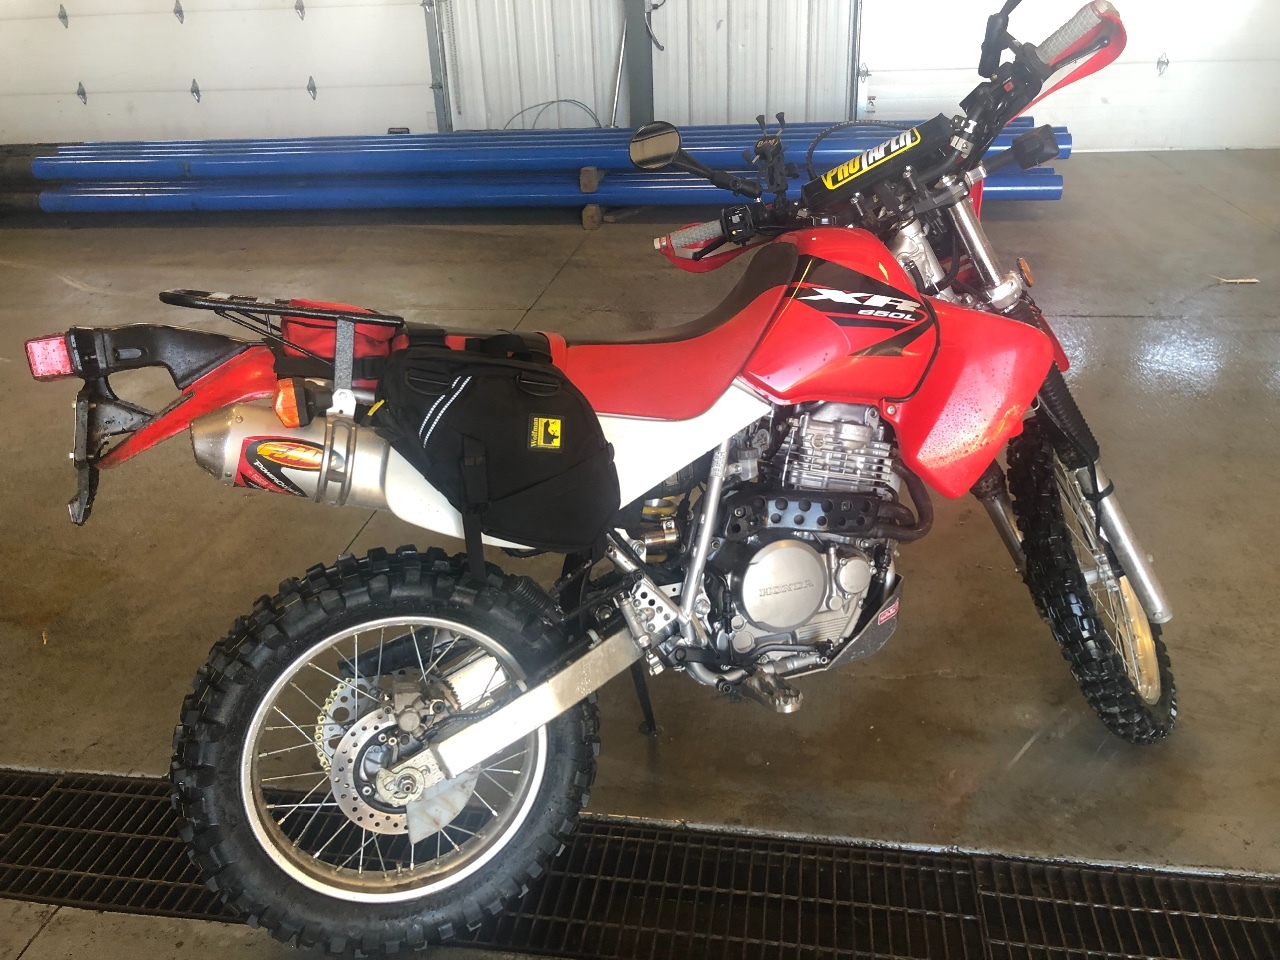 Honda Xr50 Motorcycles For Sale: 8 Motorcycles - Cycle Trader